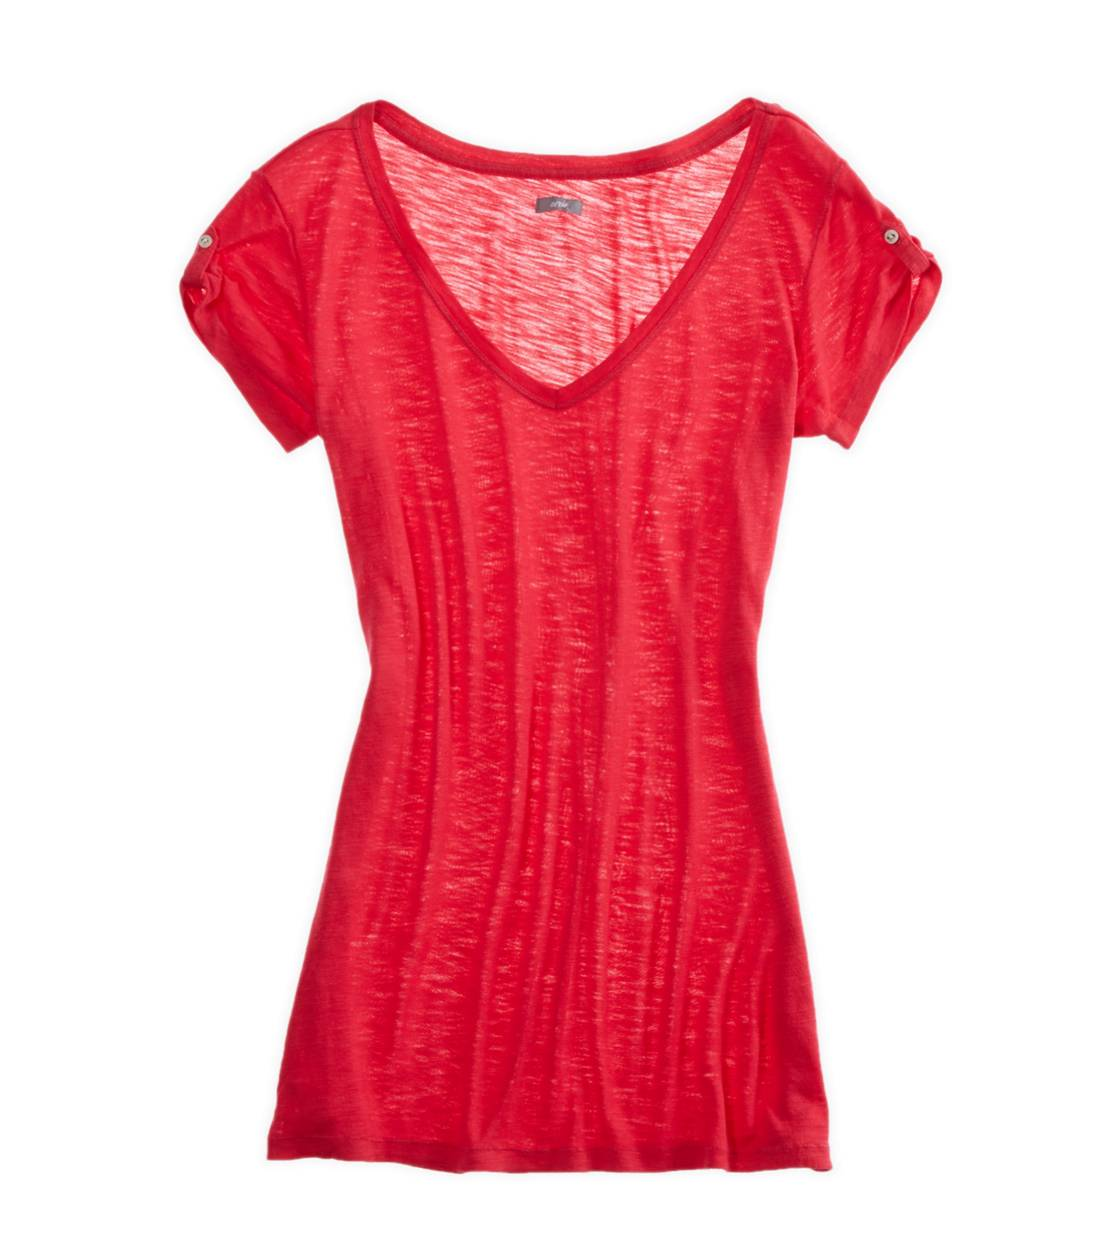 Kissed Aerie V-neck T-shirt